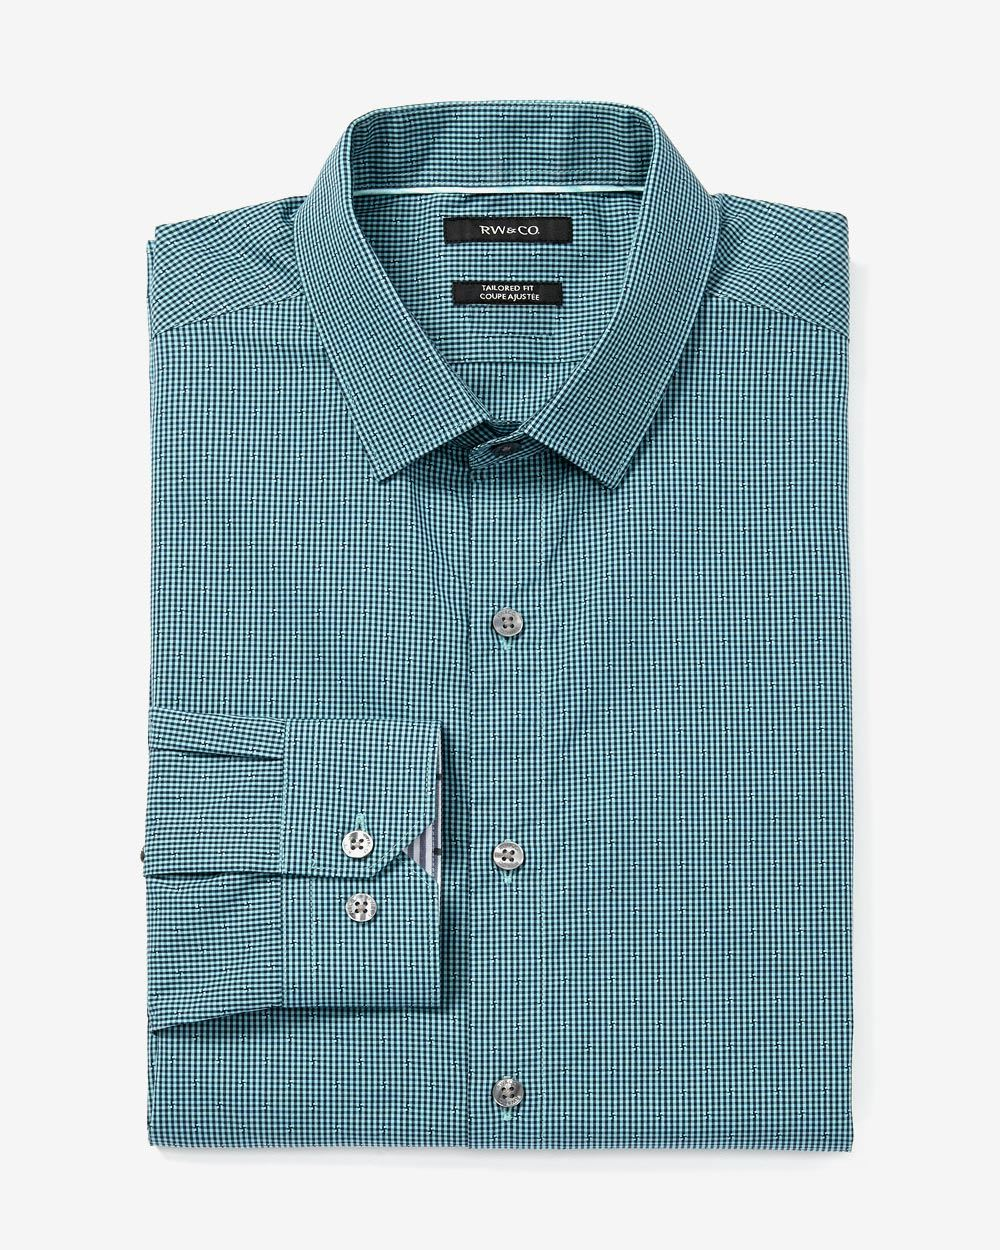 Tailored fit dress shirt rw co for Tailoring a dress shirt